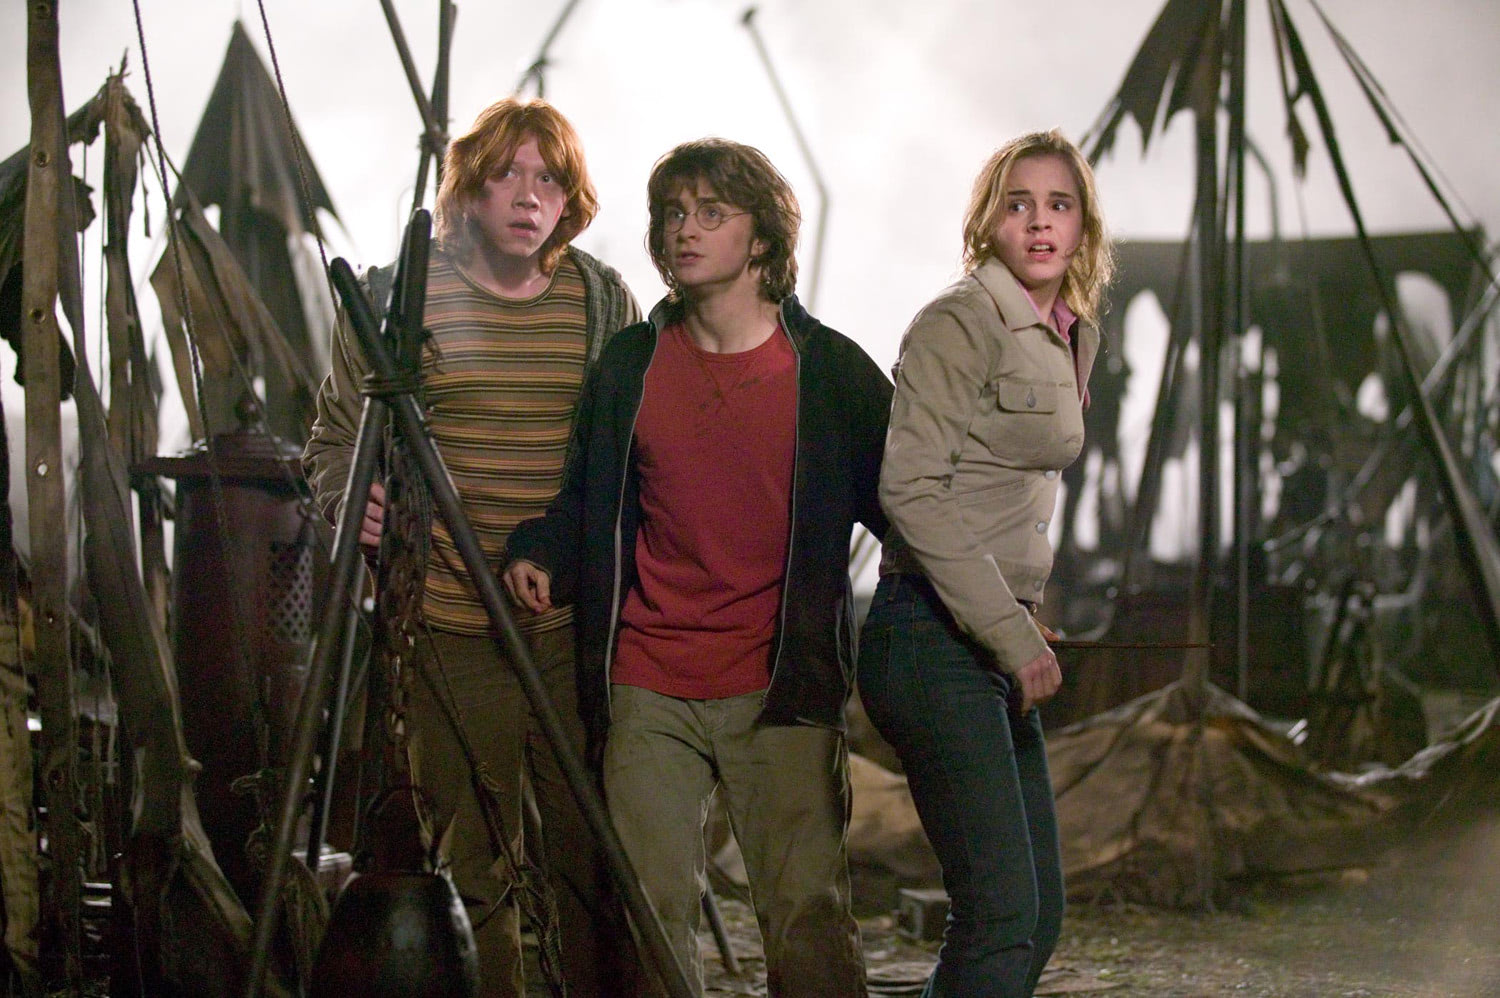 Harry, Ron and Hermione after the Quidditch World Cup